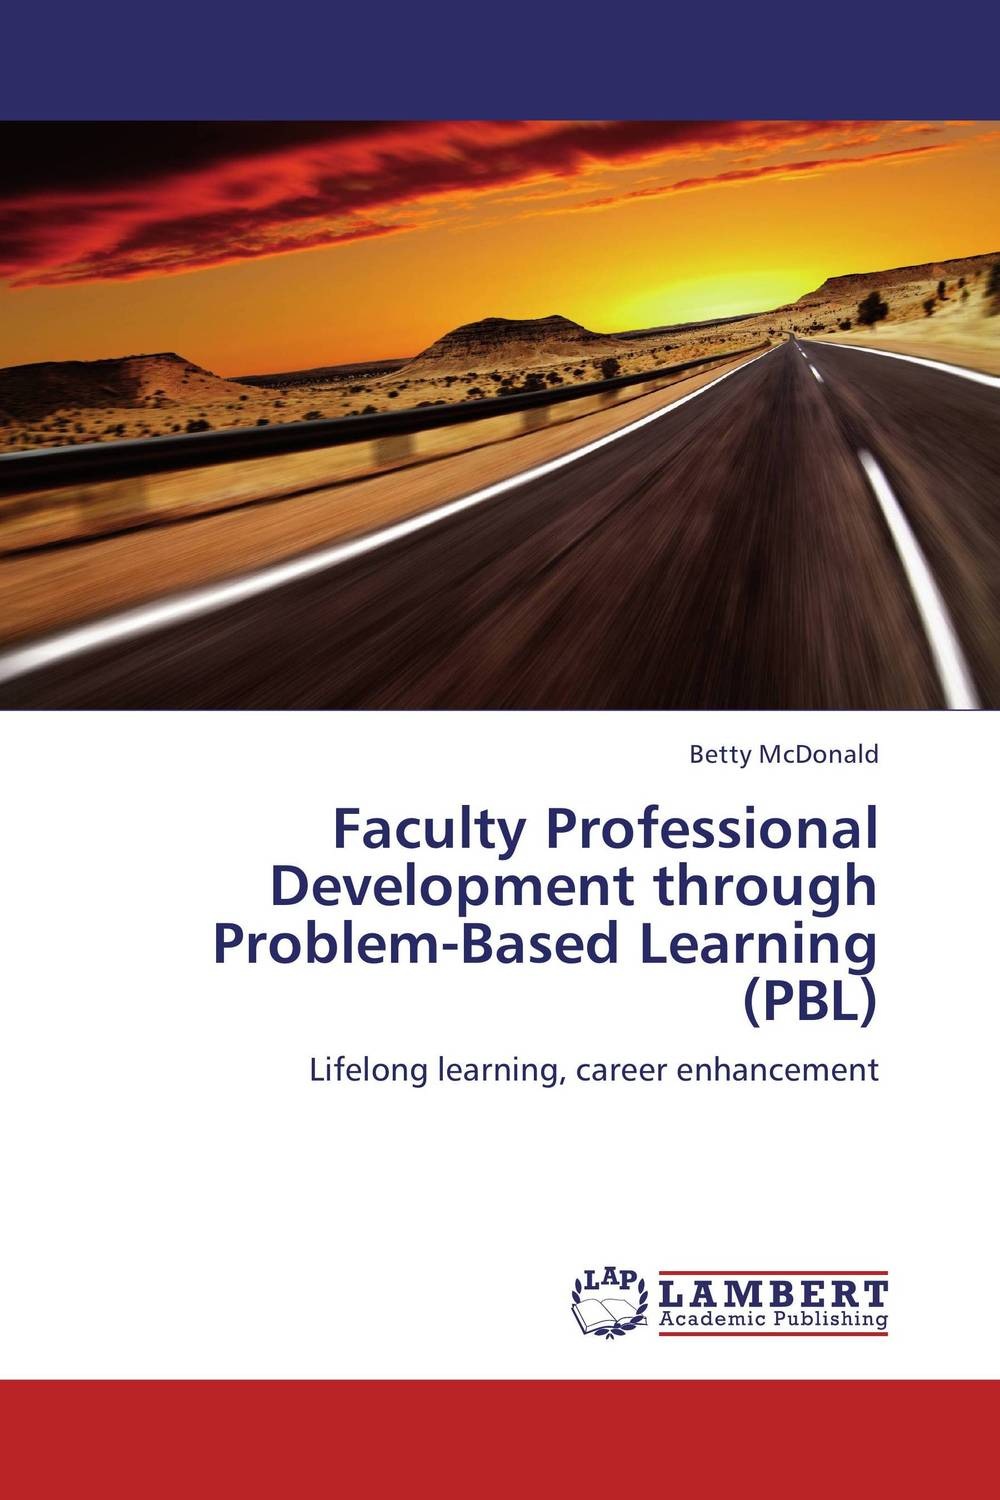 Faculty Professional Development through Problem-Based Learning (PBL) robert benfari c understanding and changing your management style assessments and tools for self development